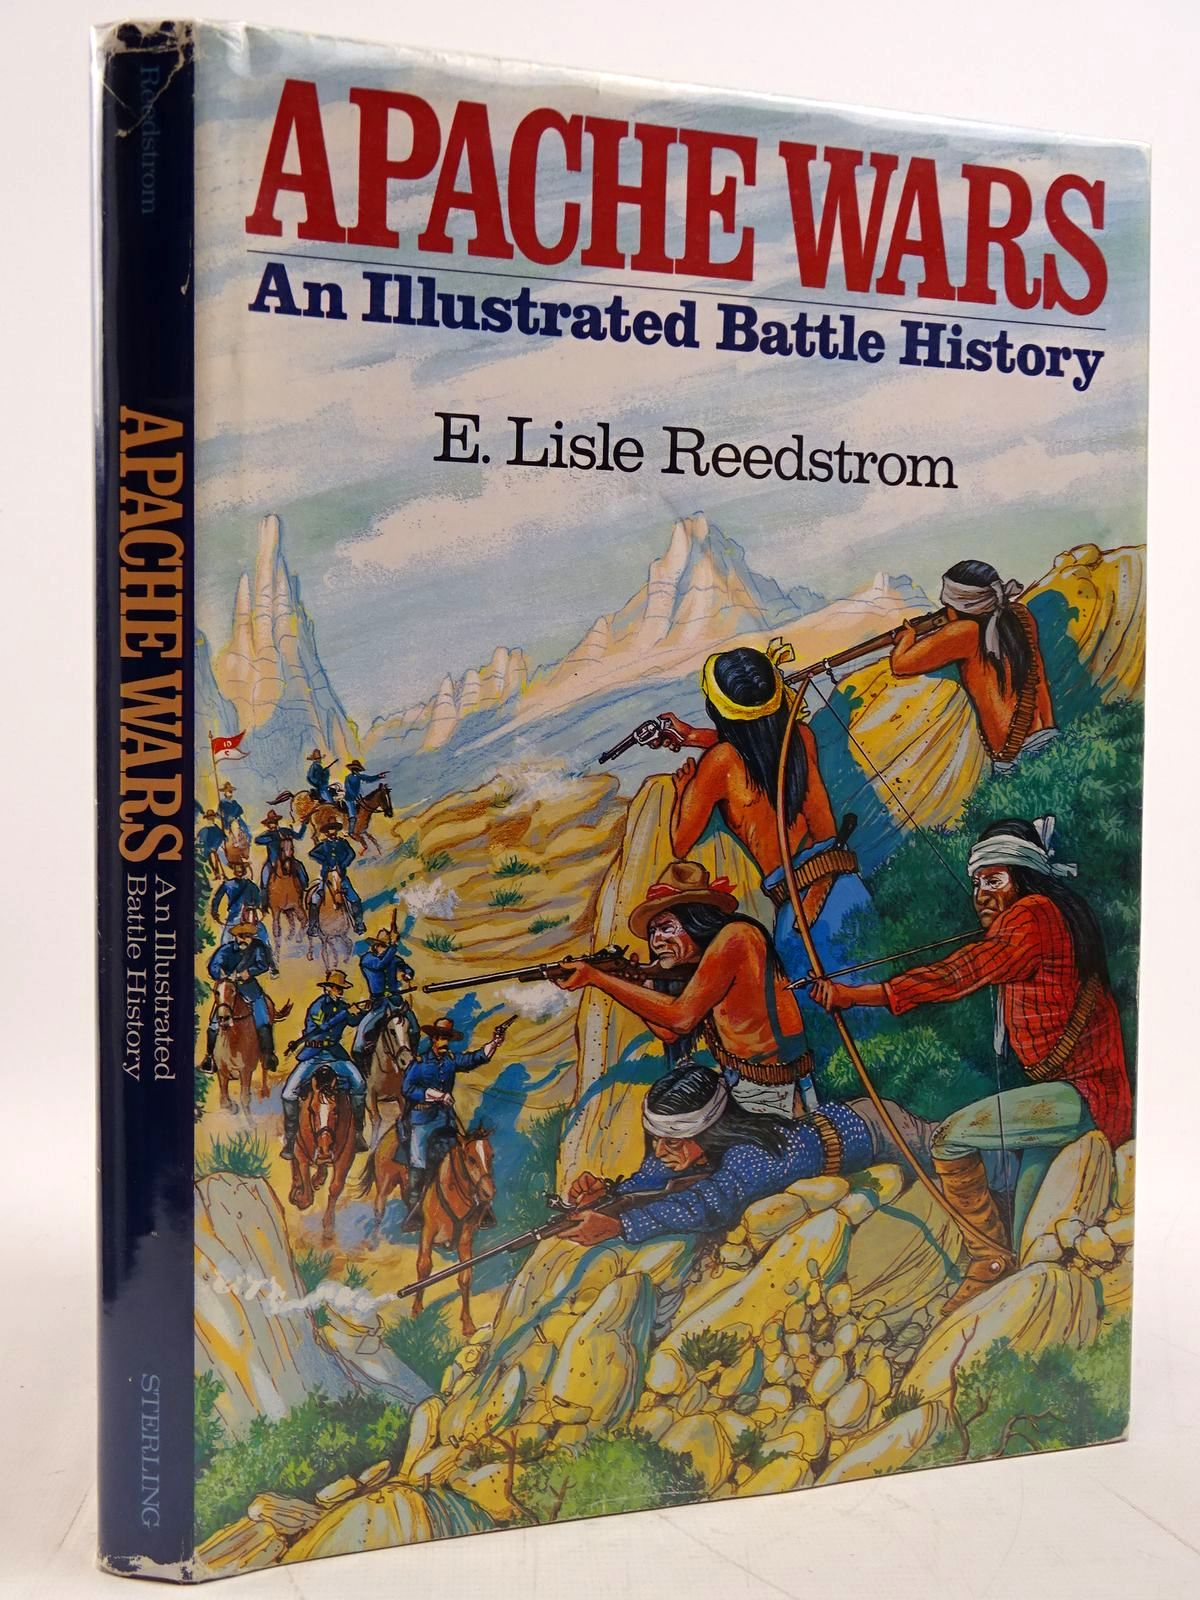 Photo of APACHE WARS AN ILLUSTRATED BATTLE HISTORY written by Reedstrom, E. Lisle published by Sterling Publishing Co., Inc. (STOCK CODE: 2131432)  for sale by Stella & Rose's Books